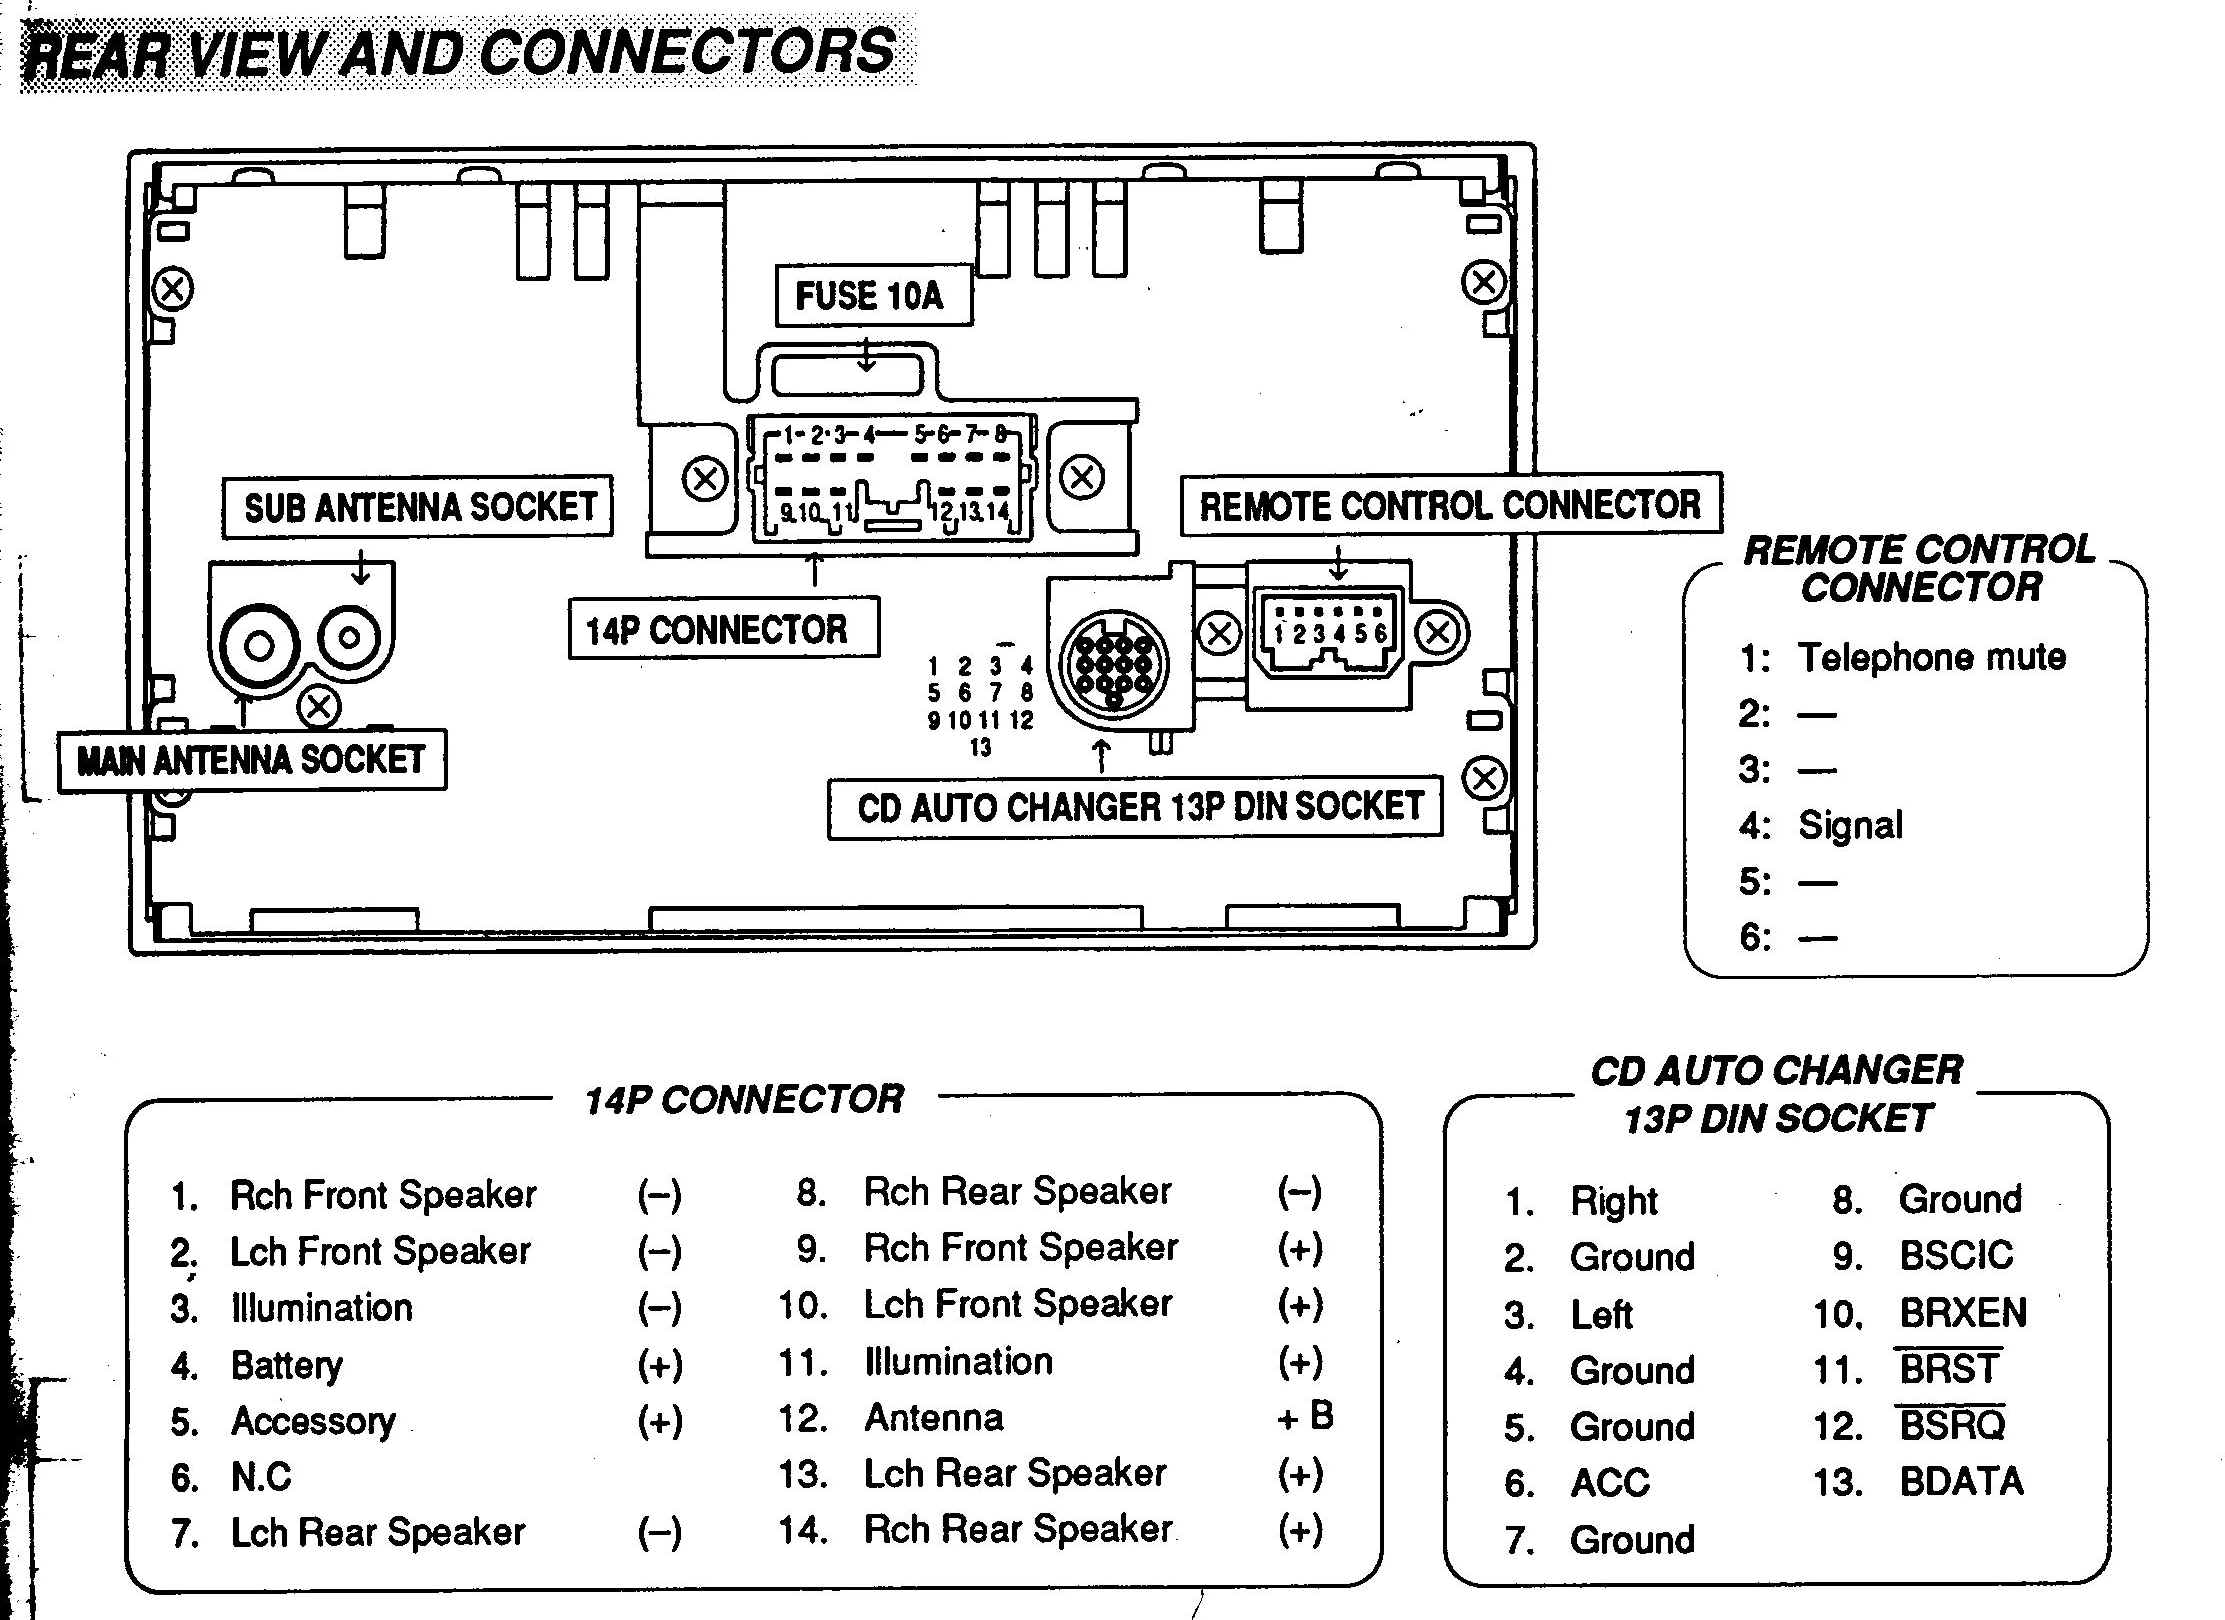 WireHarnessMit121003 car radio wire diagram car wiring diagrams instruction eg civic radio wiring diagram at edmiracle.co